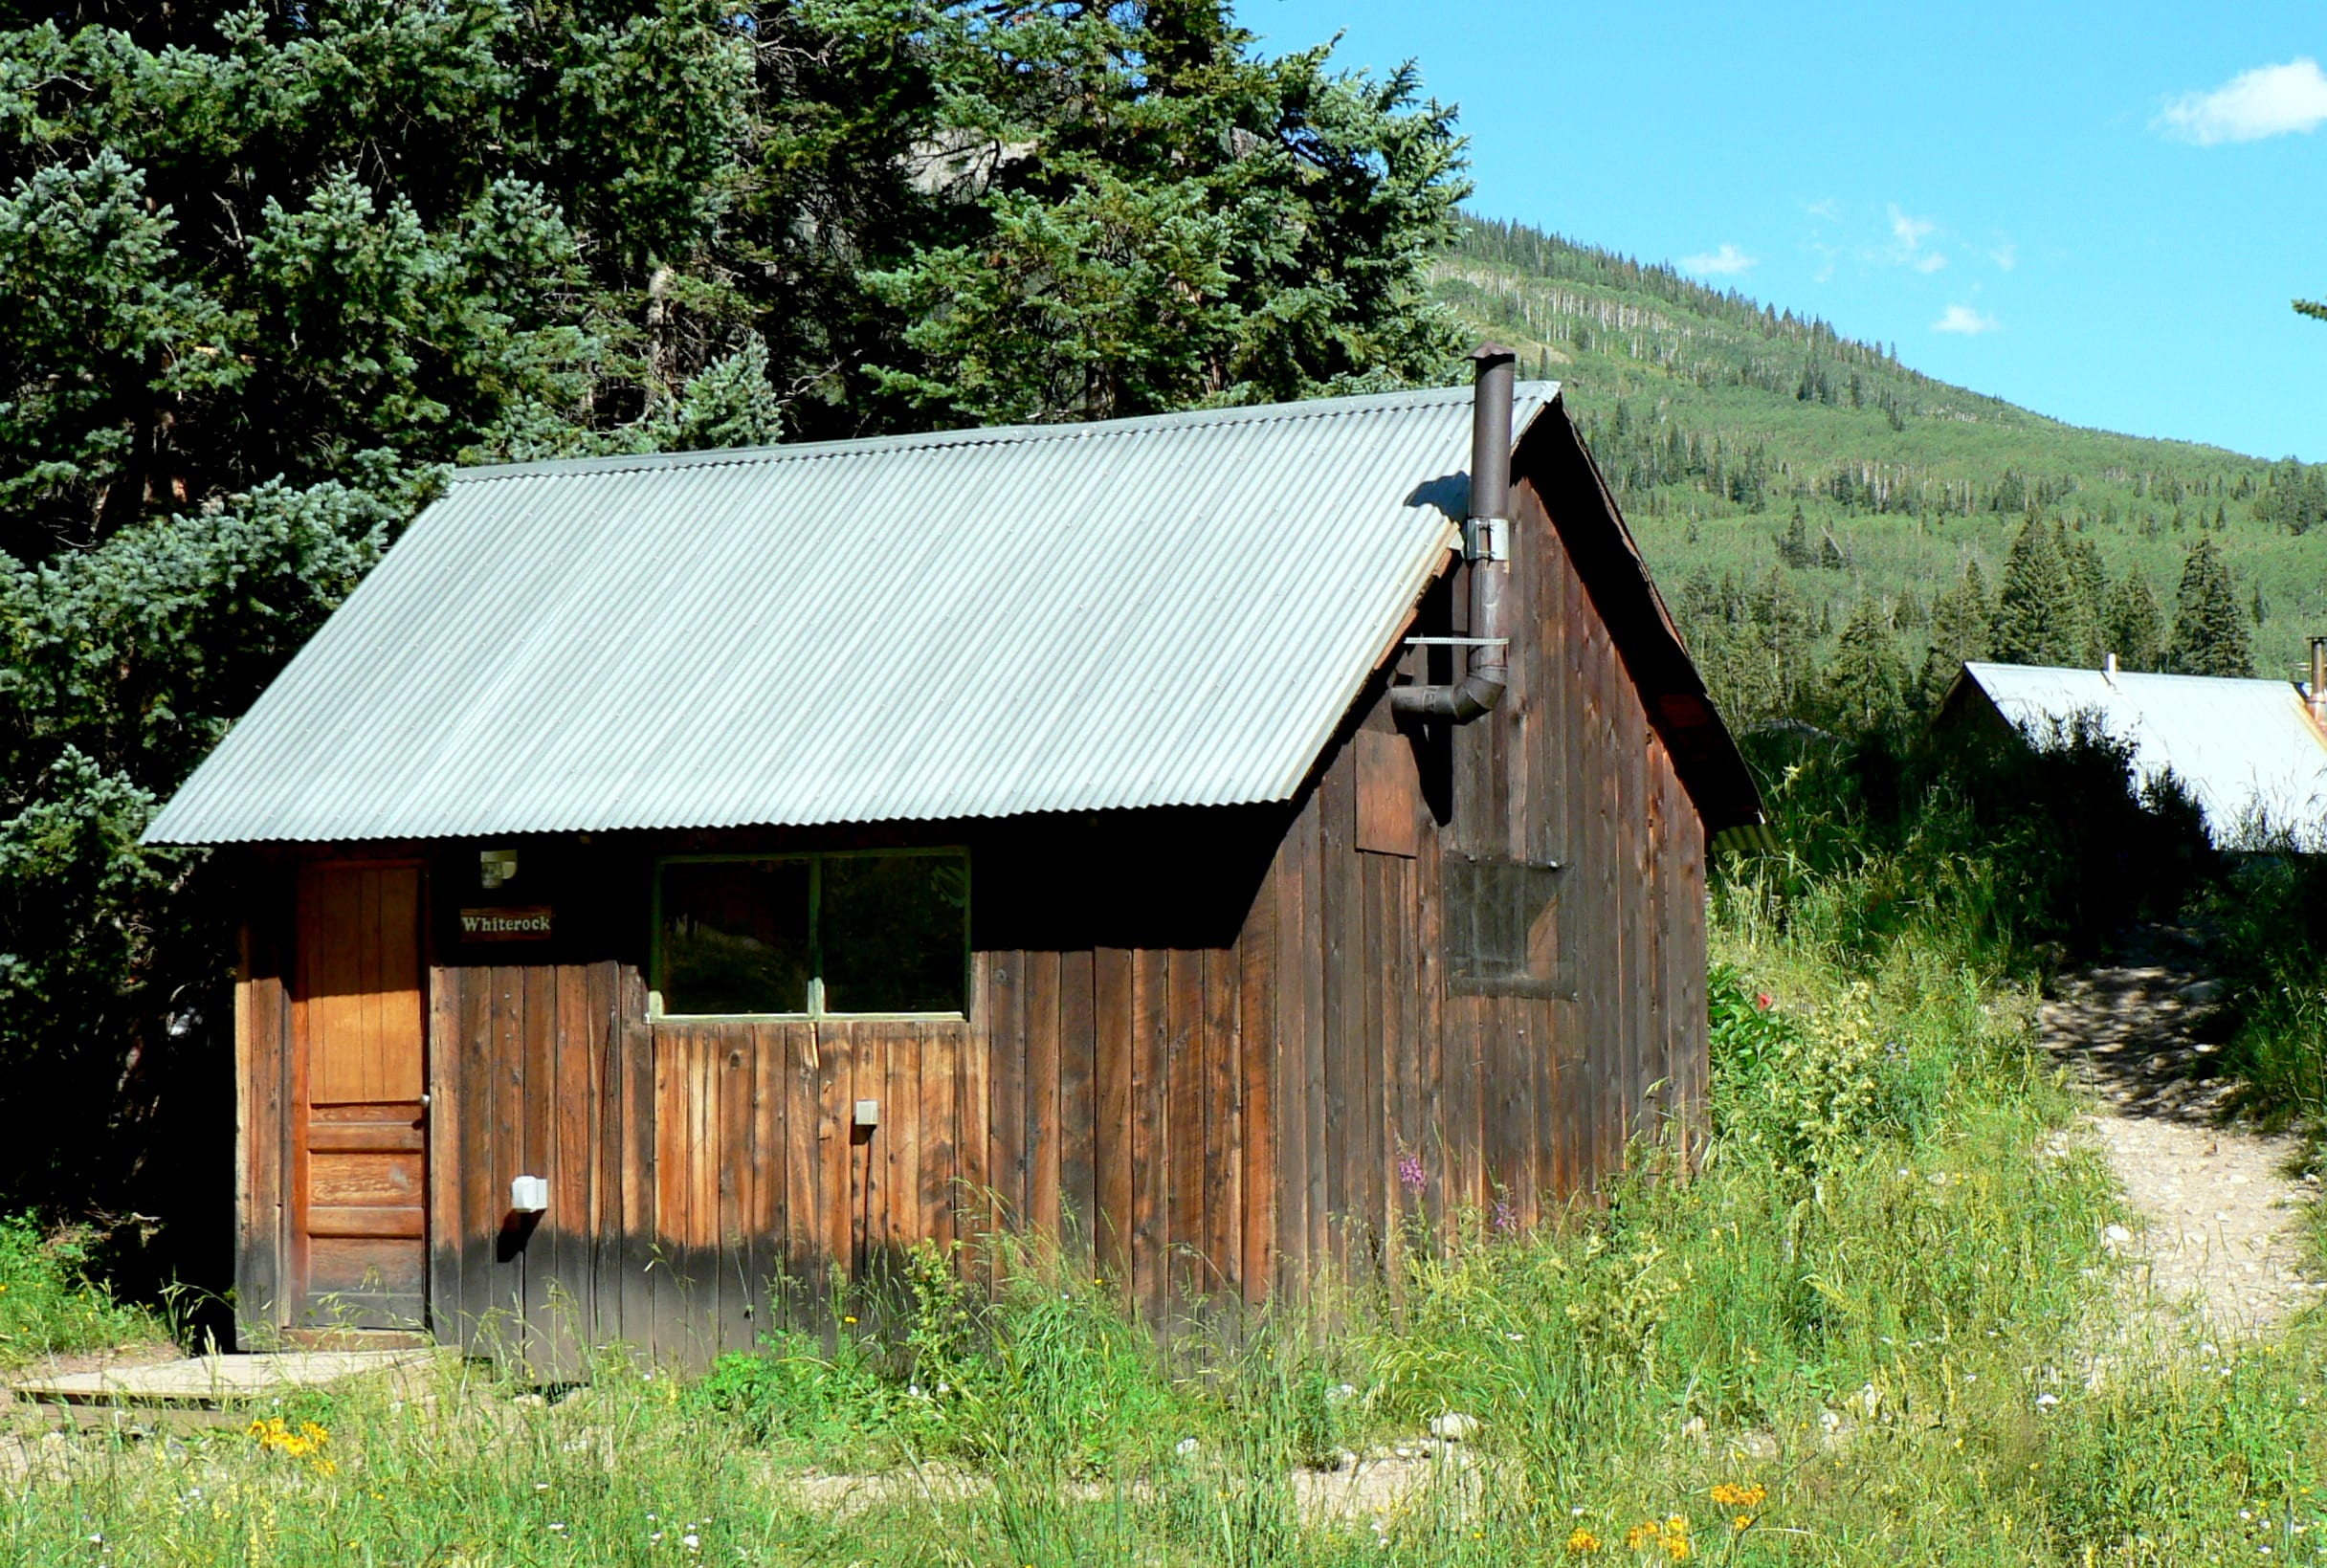 Housing rocky mountain biological laboratory for White rock mountain cabins